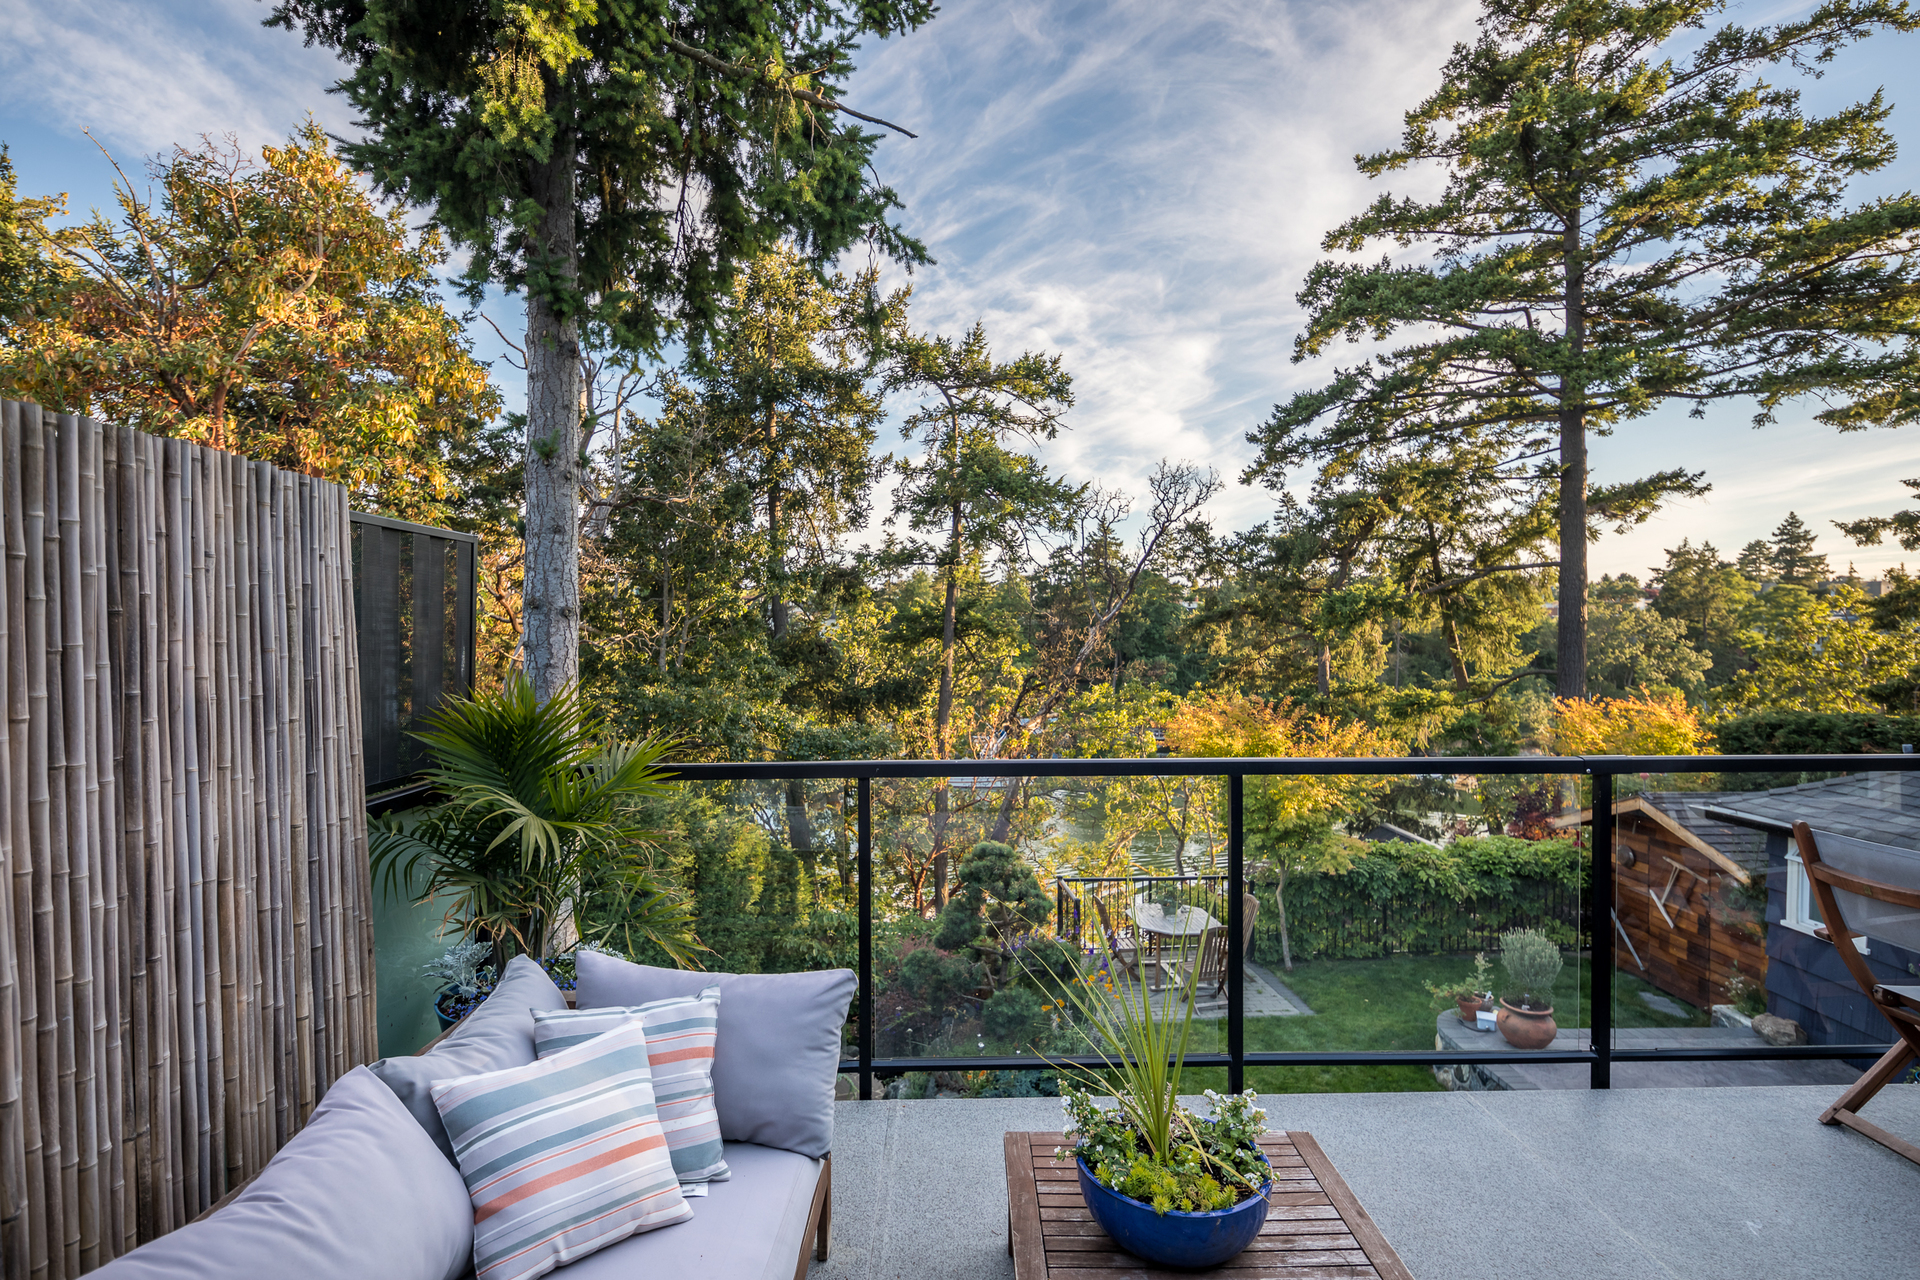 View of the backyard patio from the upper level wraparound deck at 17 Lotus Street, Burnside, Victoria